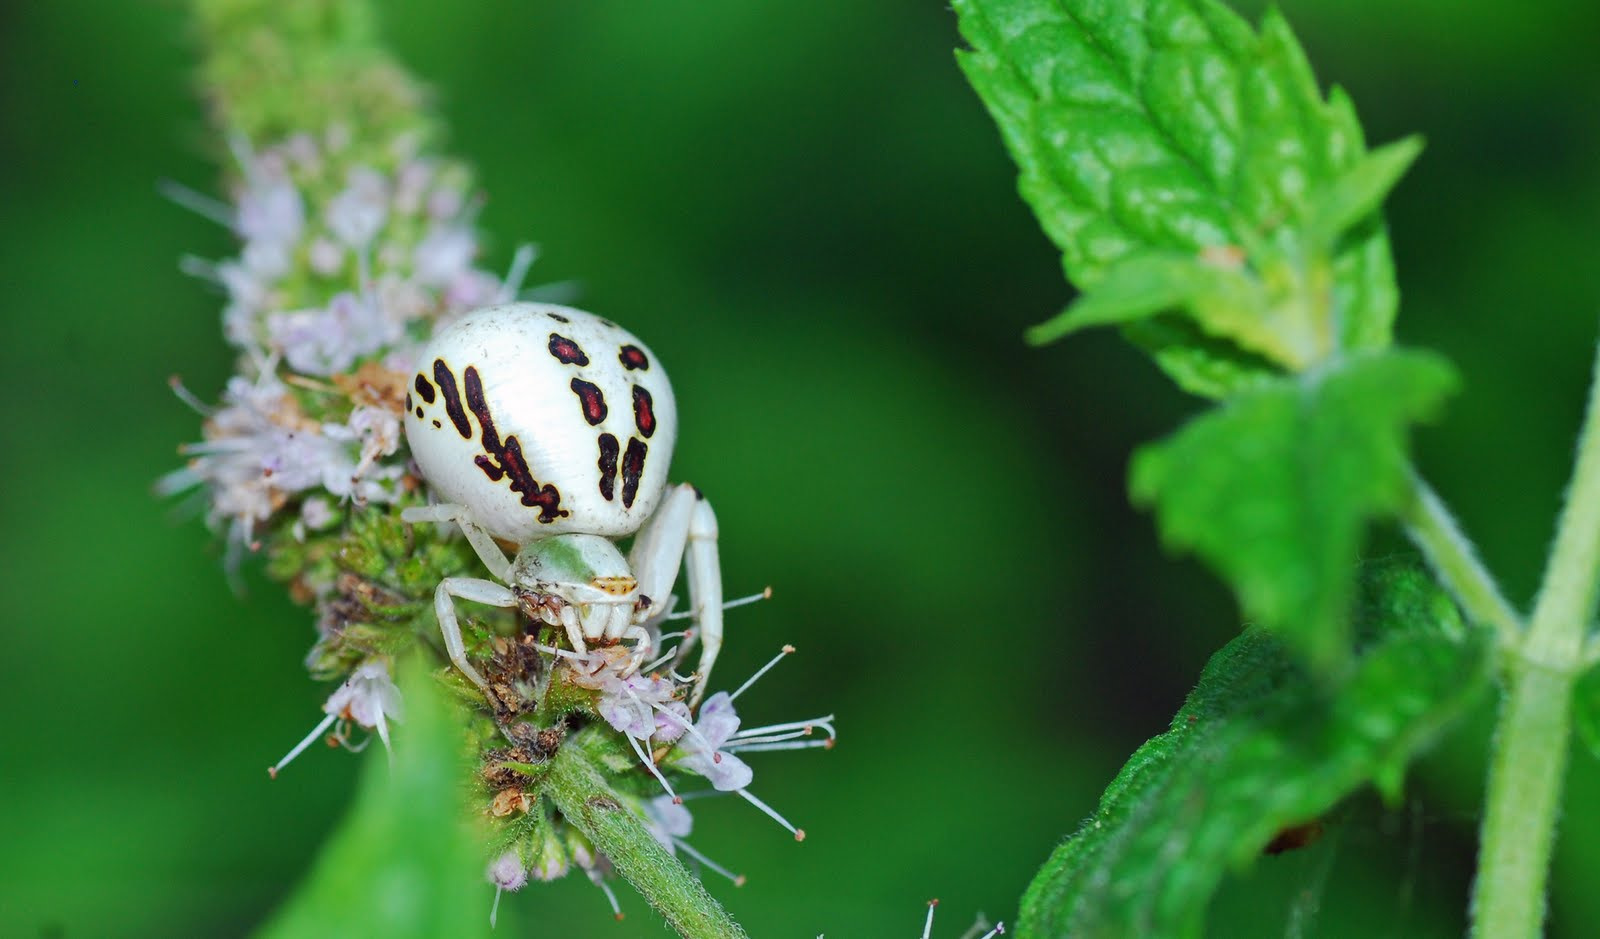 Crab spider preying bumble bee garden spiders spiders flower spiders - Crab Spiders